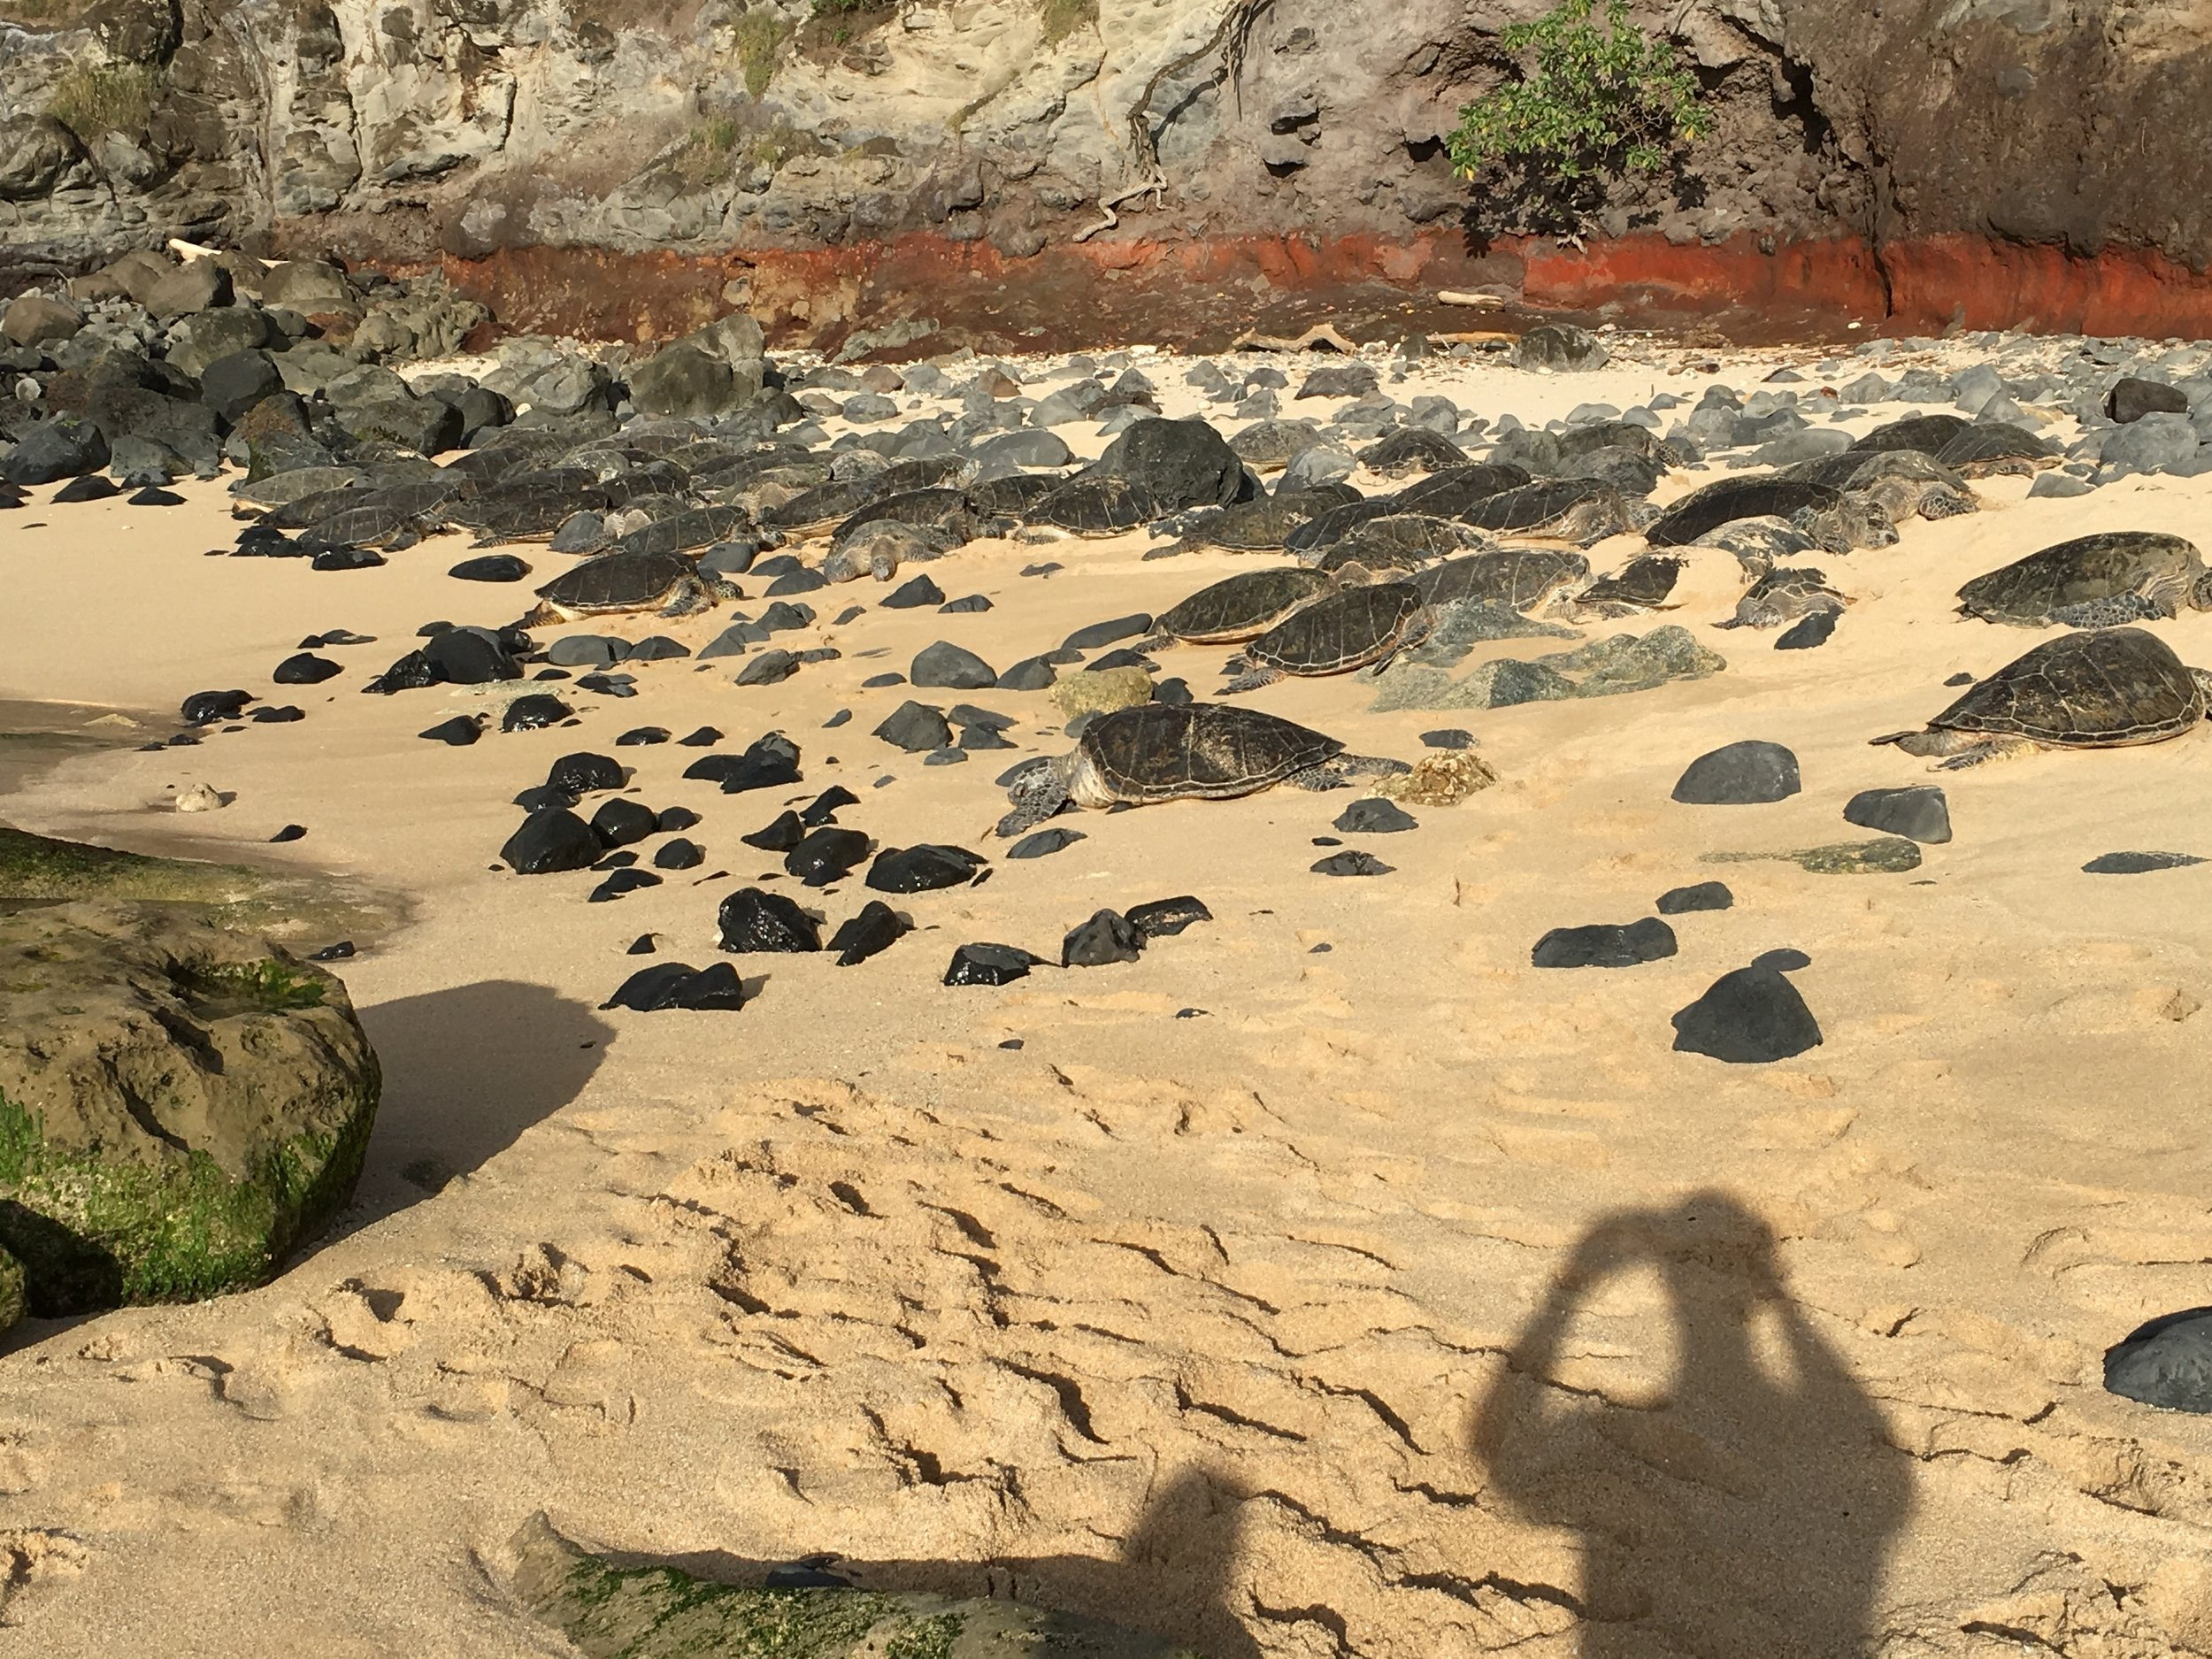 We counted at least 30 turtles, but there were likely more. On Ho'okipa beach.